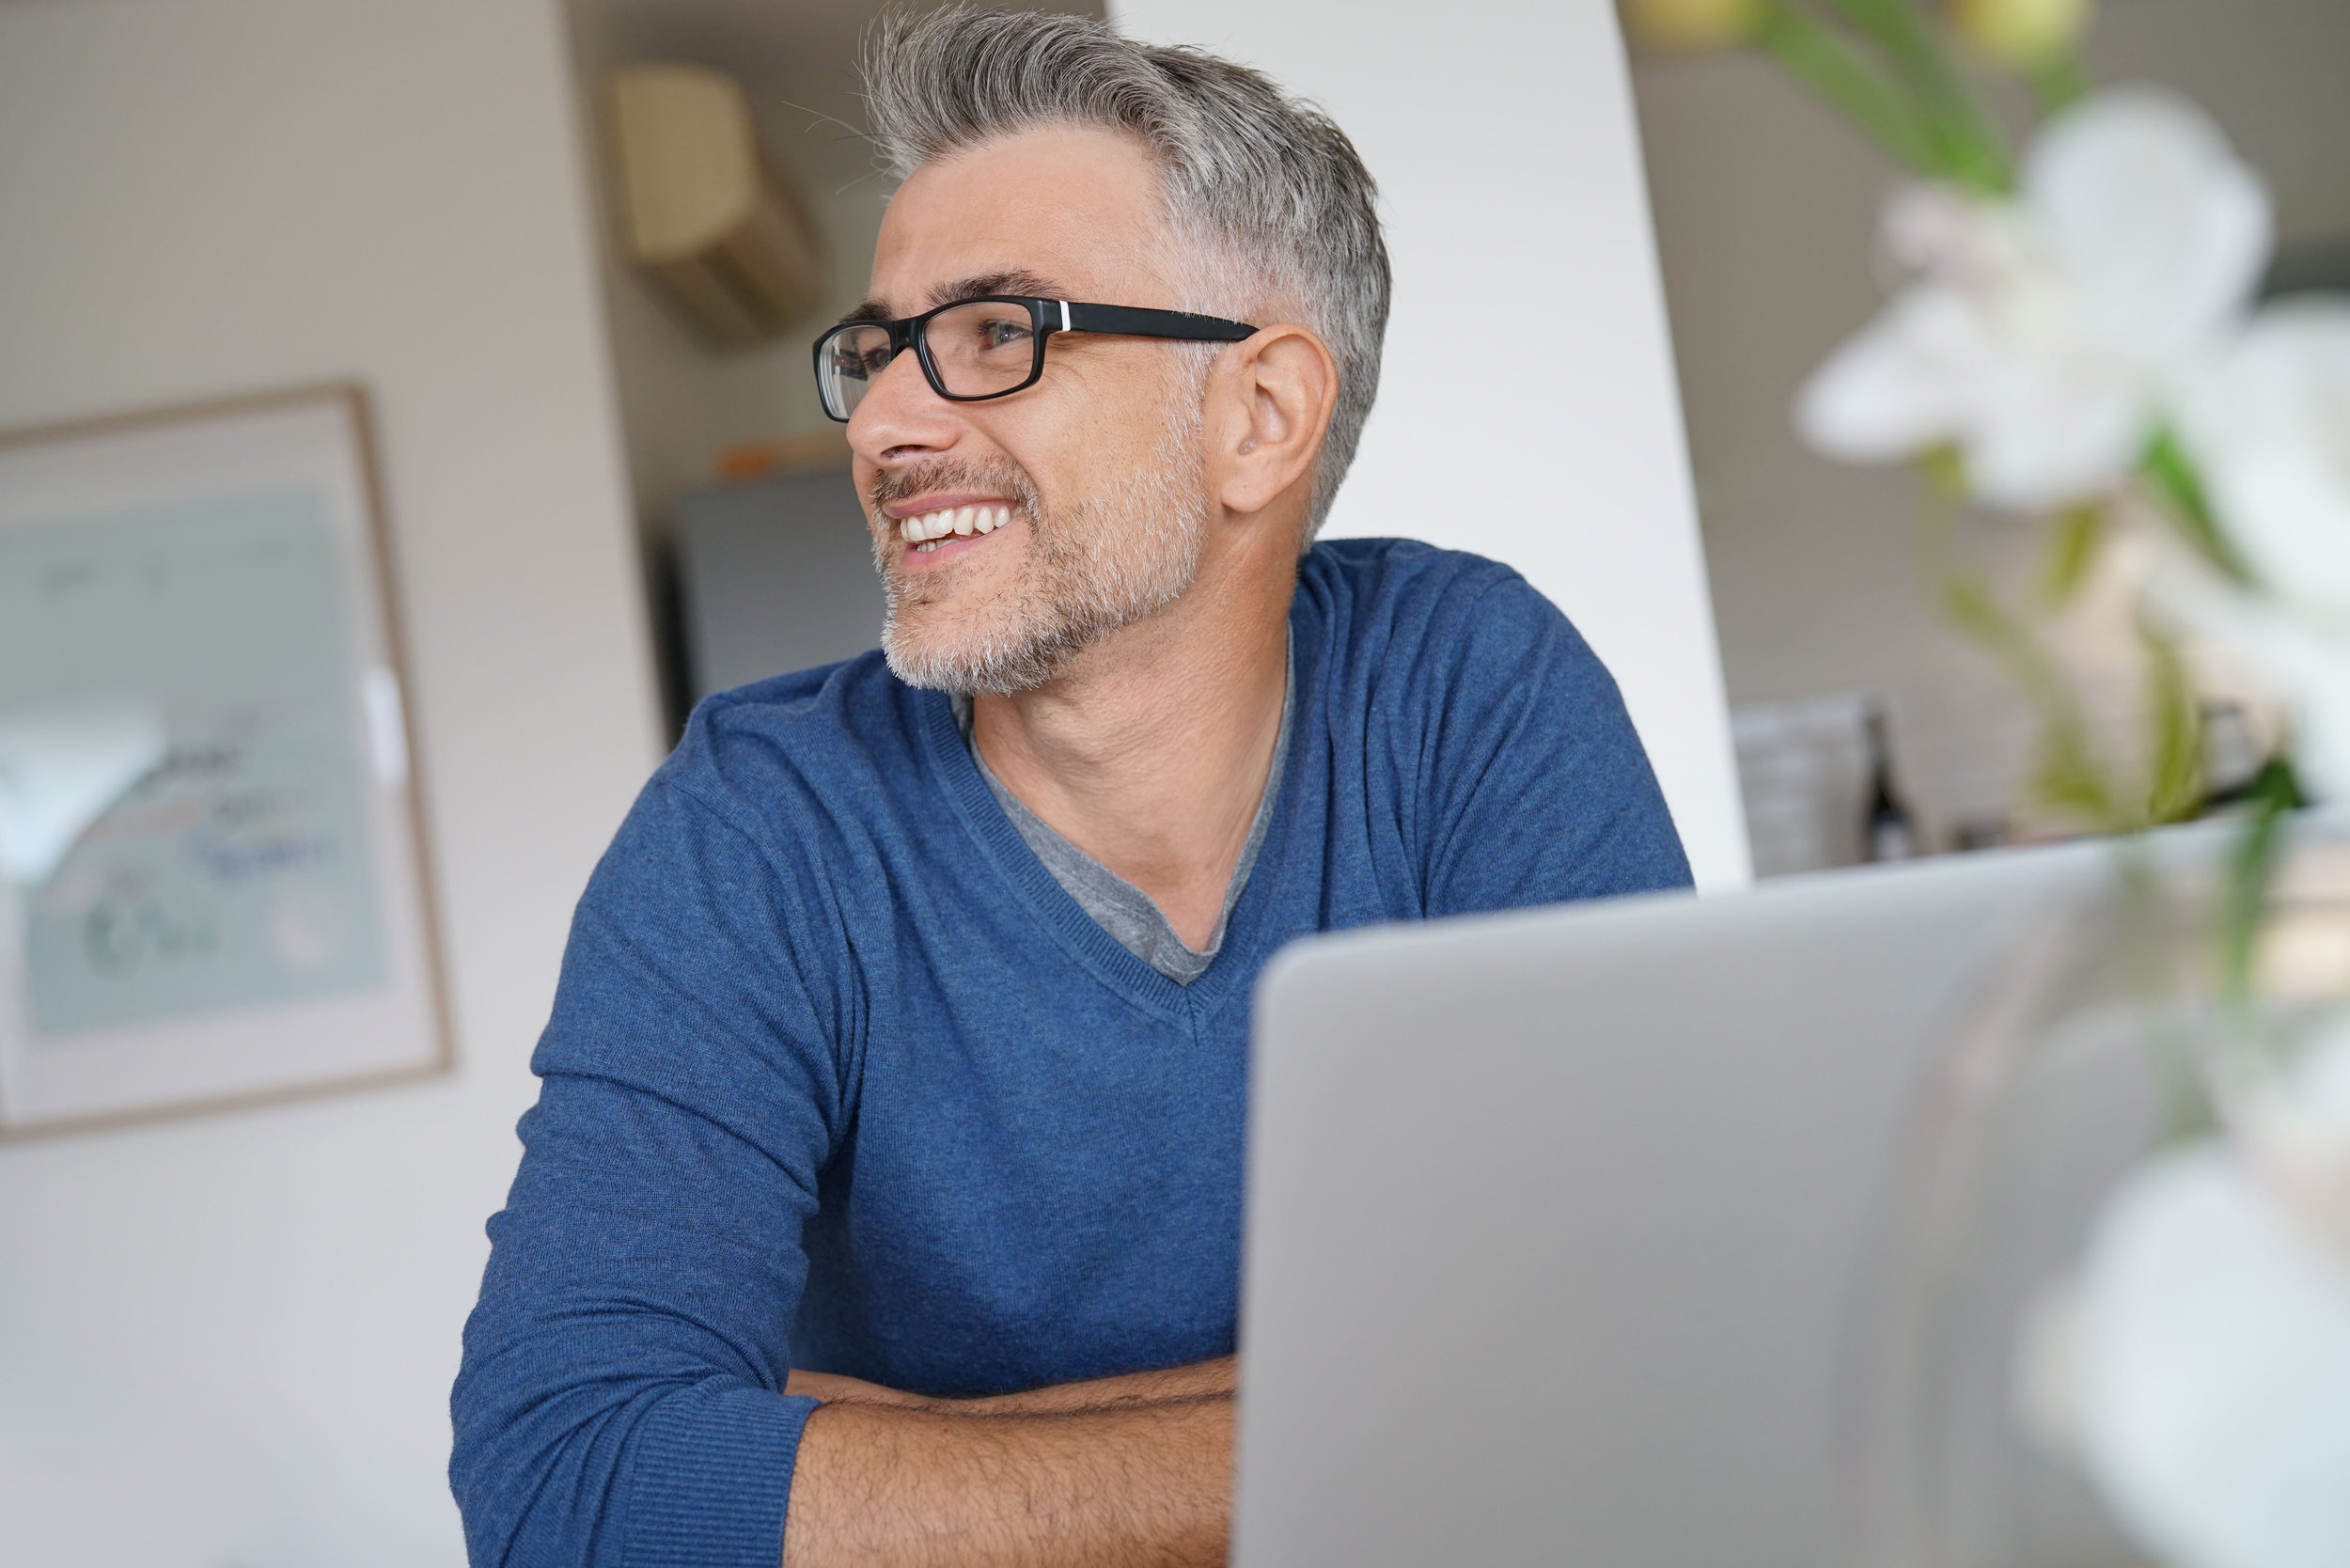 bigstock-Middle-aged-man-working-from-h-210795856.jpg